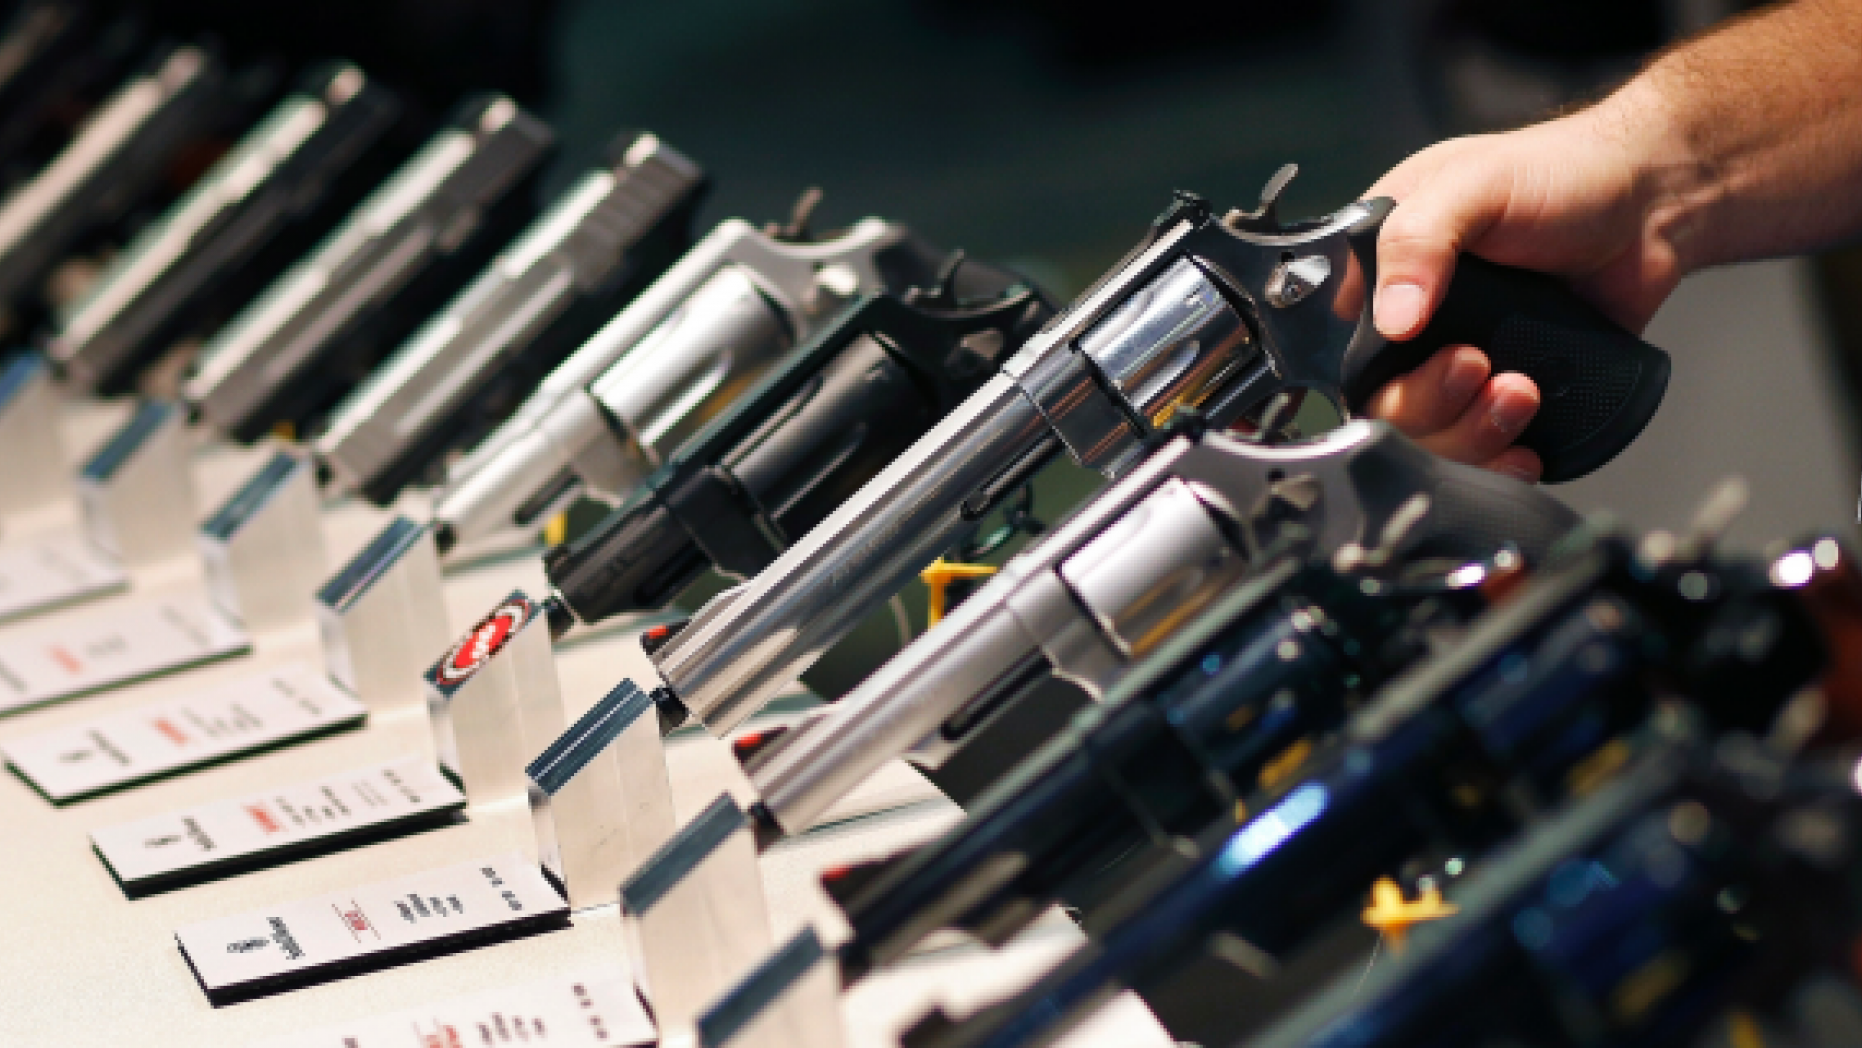 FILE - In this Jan. 19, 2016 file photo, handguns are displayed at the Smith & Wesson booth at the Shooting, Hunting and Outdoor Trade Show in Las Vegas. Two former trade show workers have pleaded guilty to federal firearms charges following the theft of weapons from the U.S. gun industry